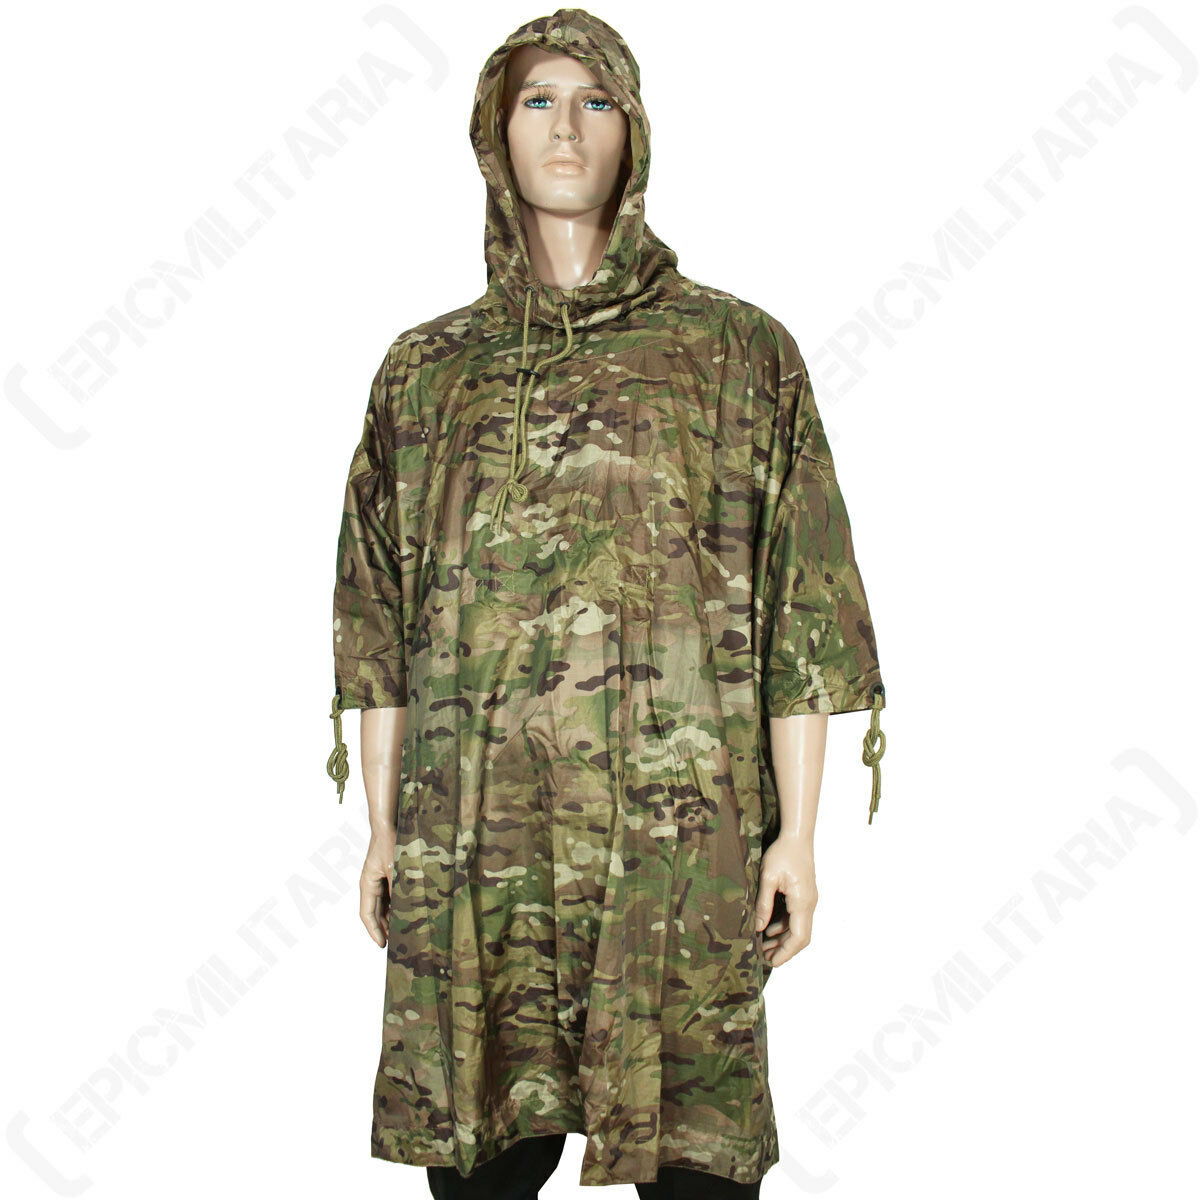 Multitarn Camo Rip Stop Poncho - Emergency  Shelter Military Festival Camping  incentive promotionals